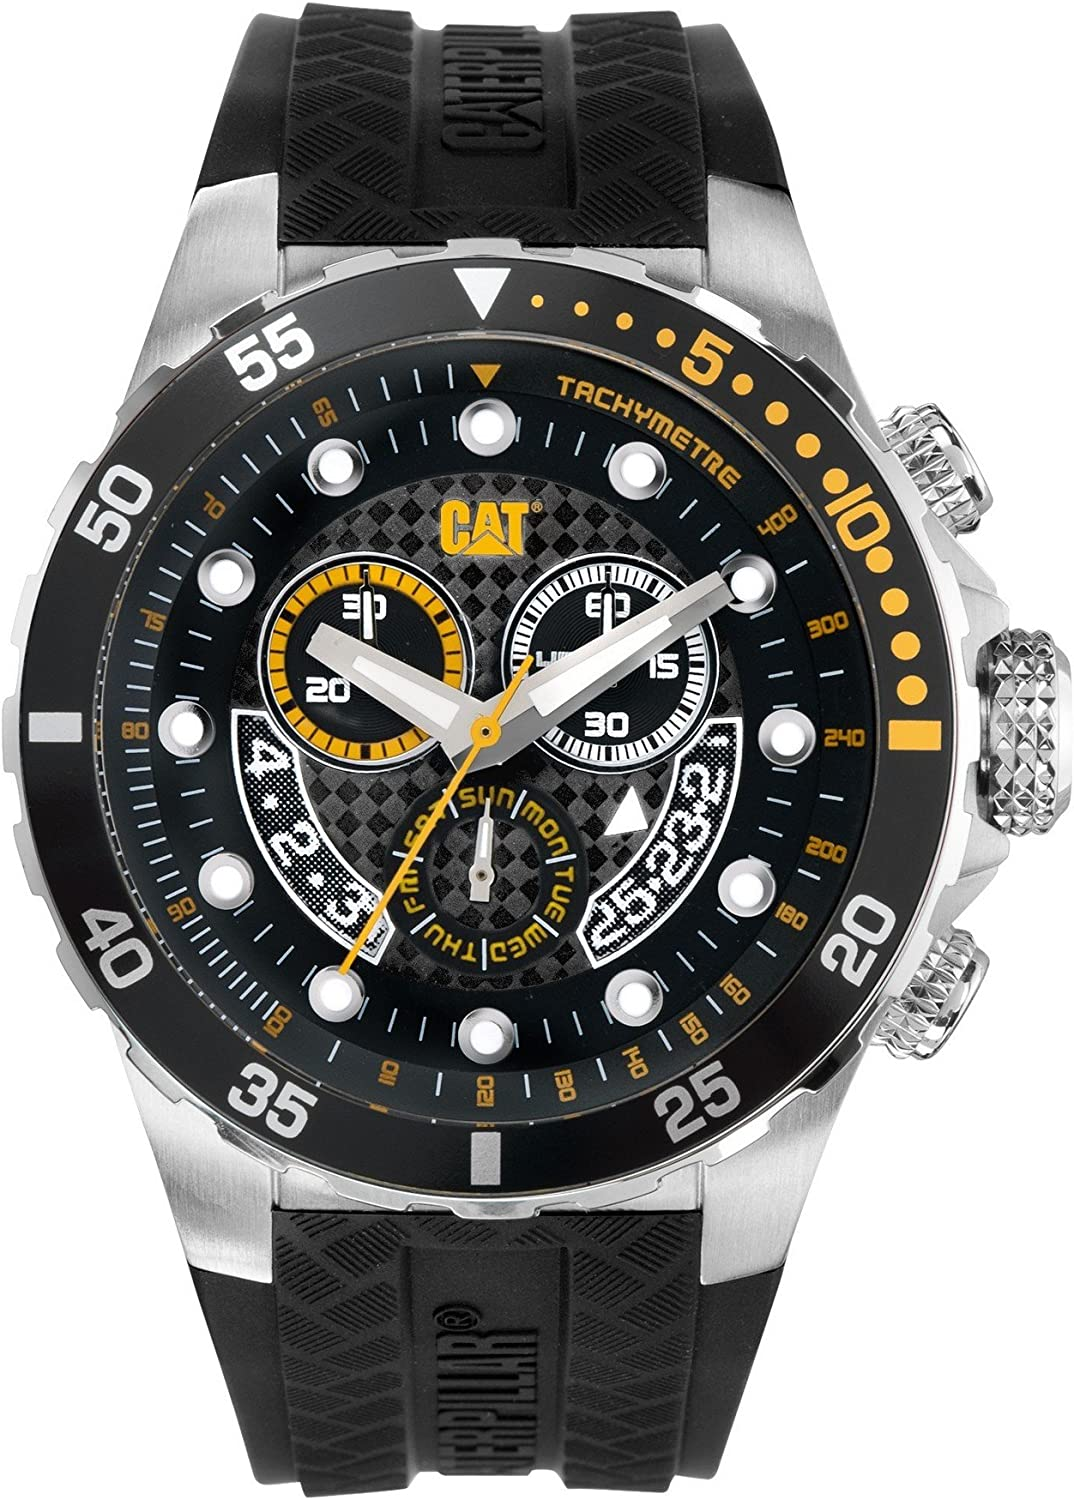 CAT Watches – P52 Sport Chrono – Black Black